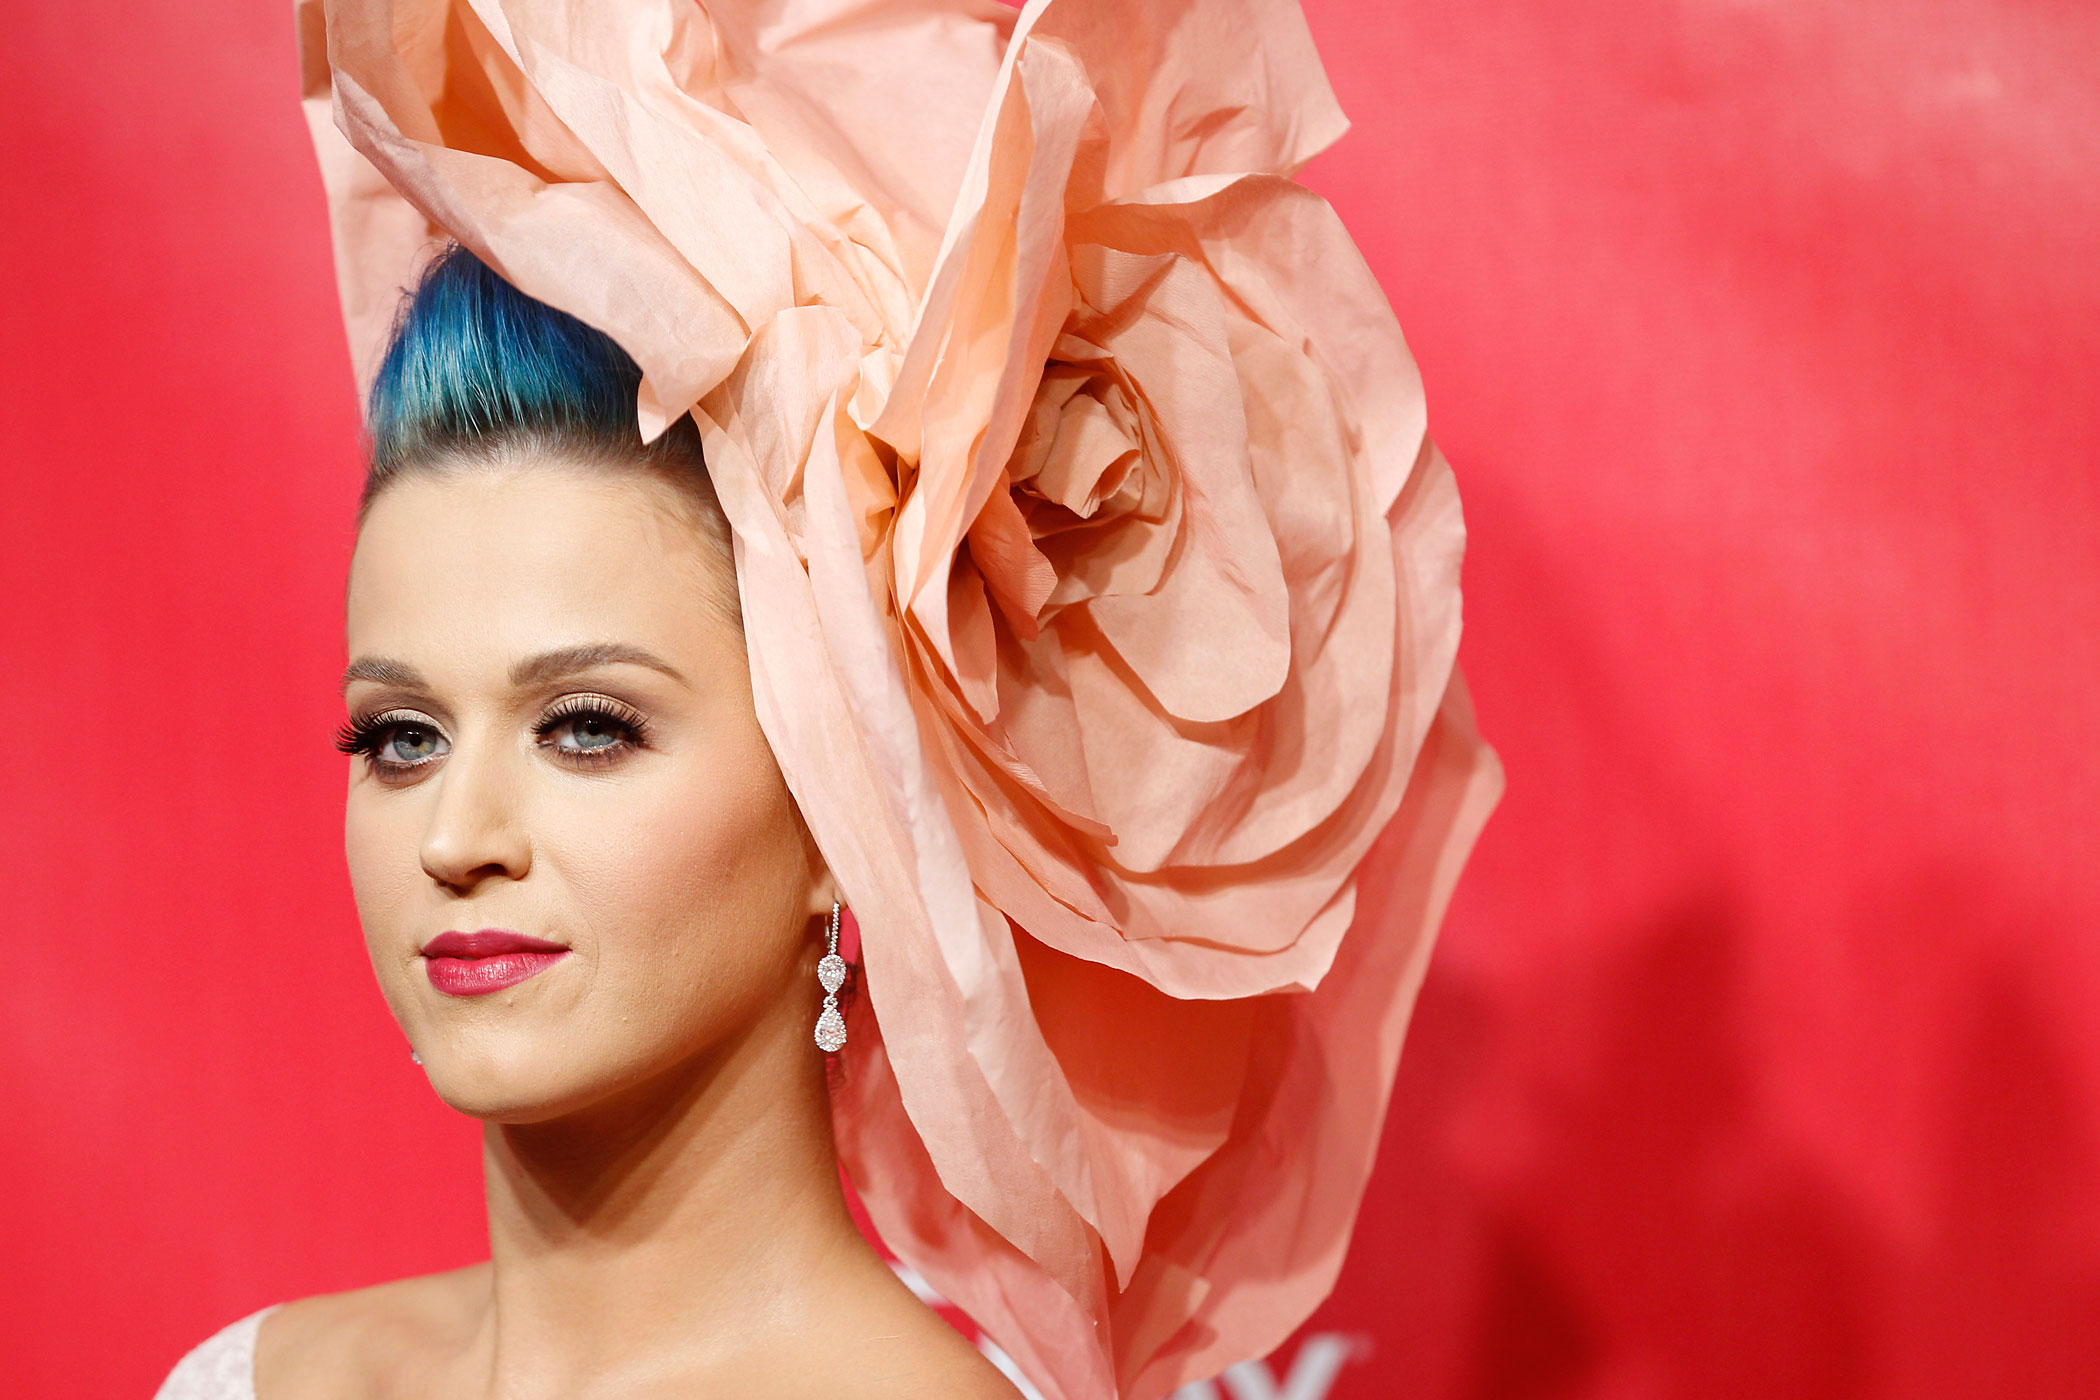 Katy Perry poses at the 2012 MusiCares Person of the Year tribute honoring Paul McCartney in Los Angeles, February 10, 2012.